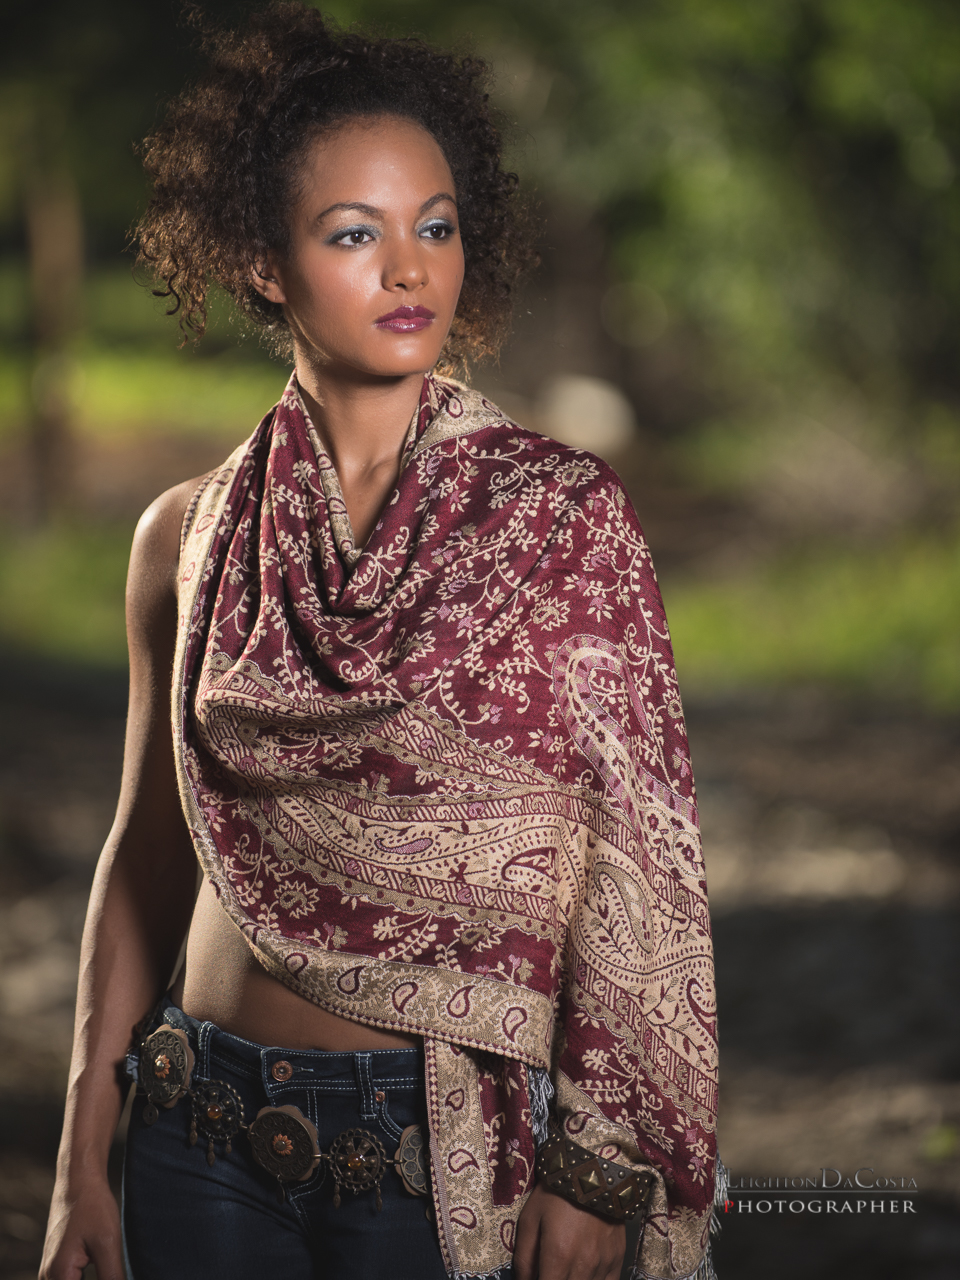 Marica Sutton Model_ Leighton DaCosta Photographer_Red Scarf-9.jpg